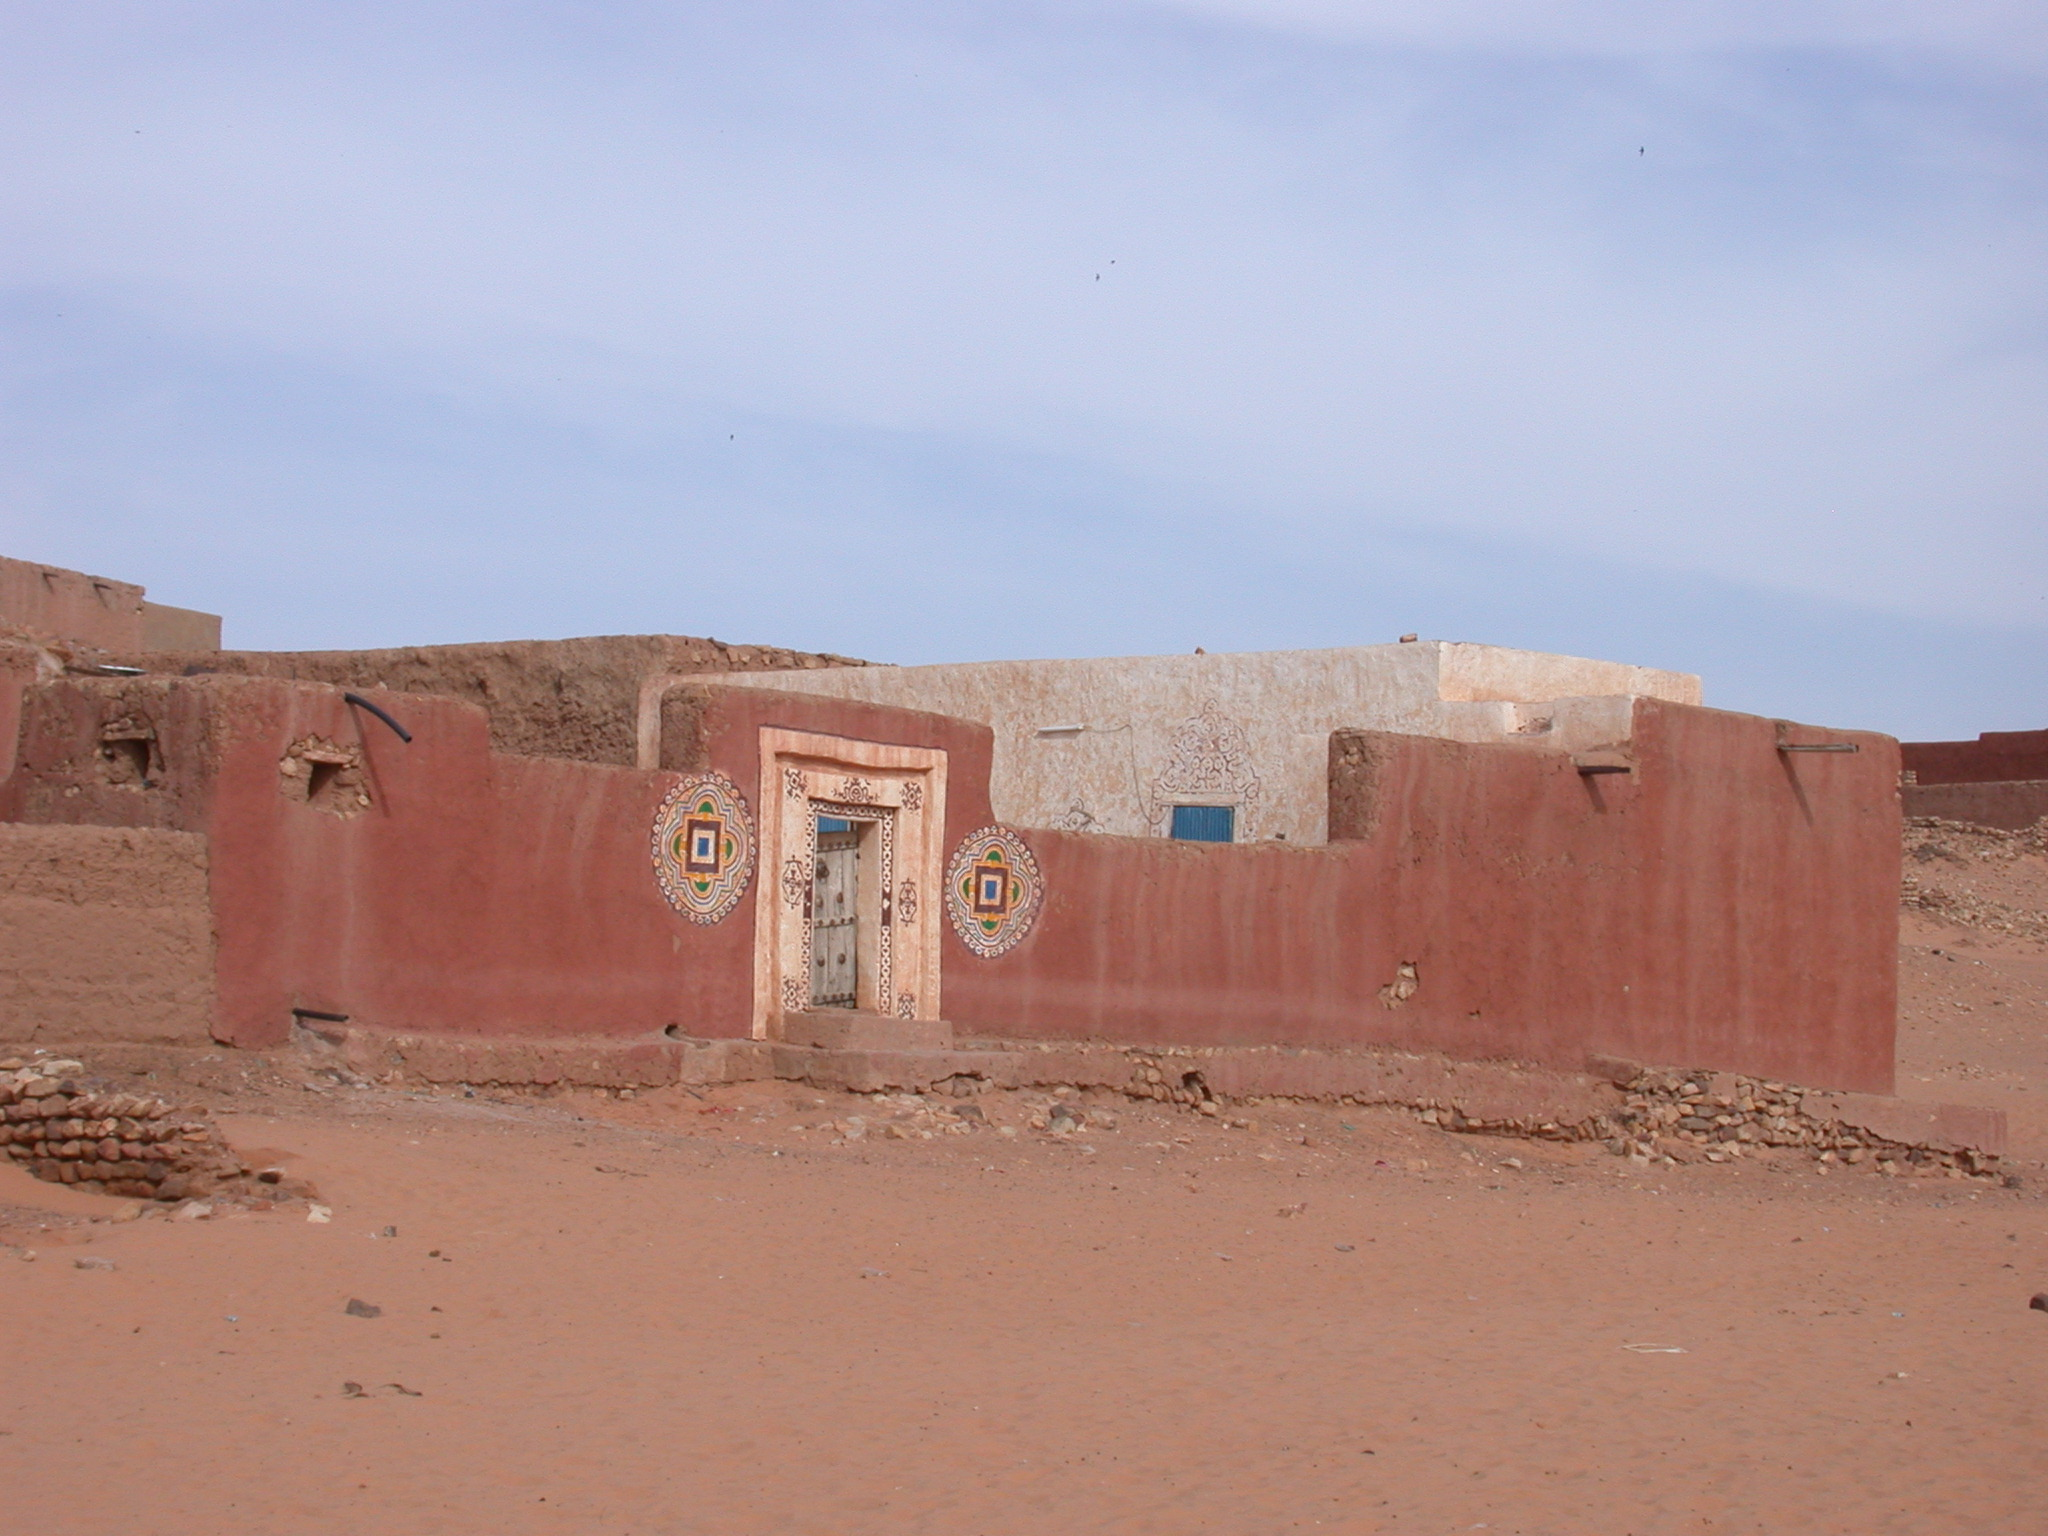 Banco Building in Ancient City of Oulata, Mauritania